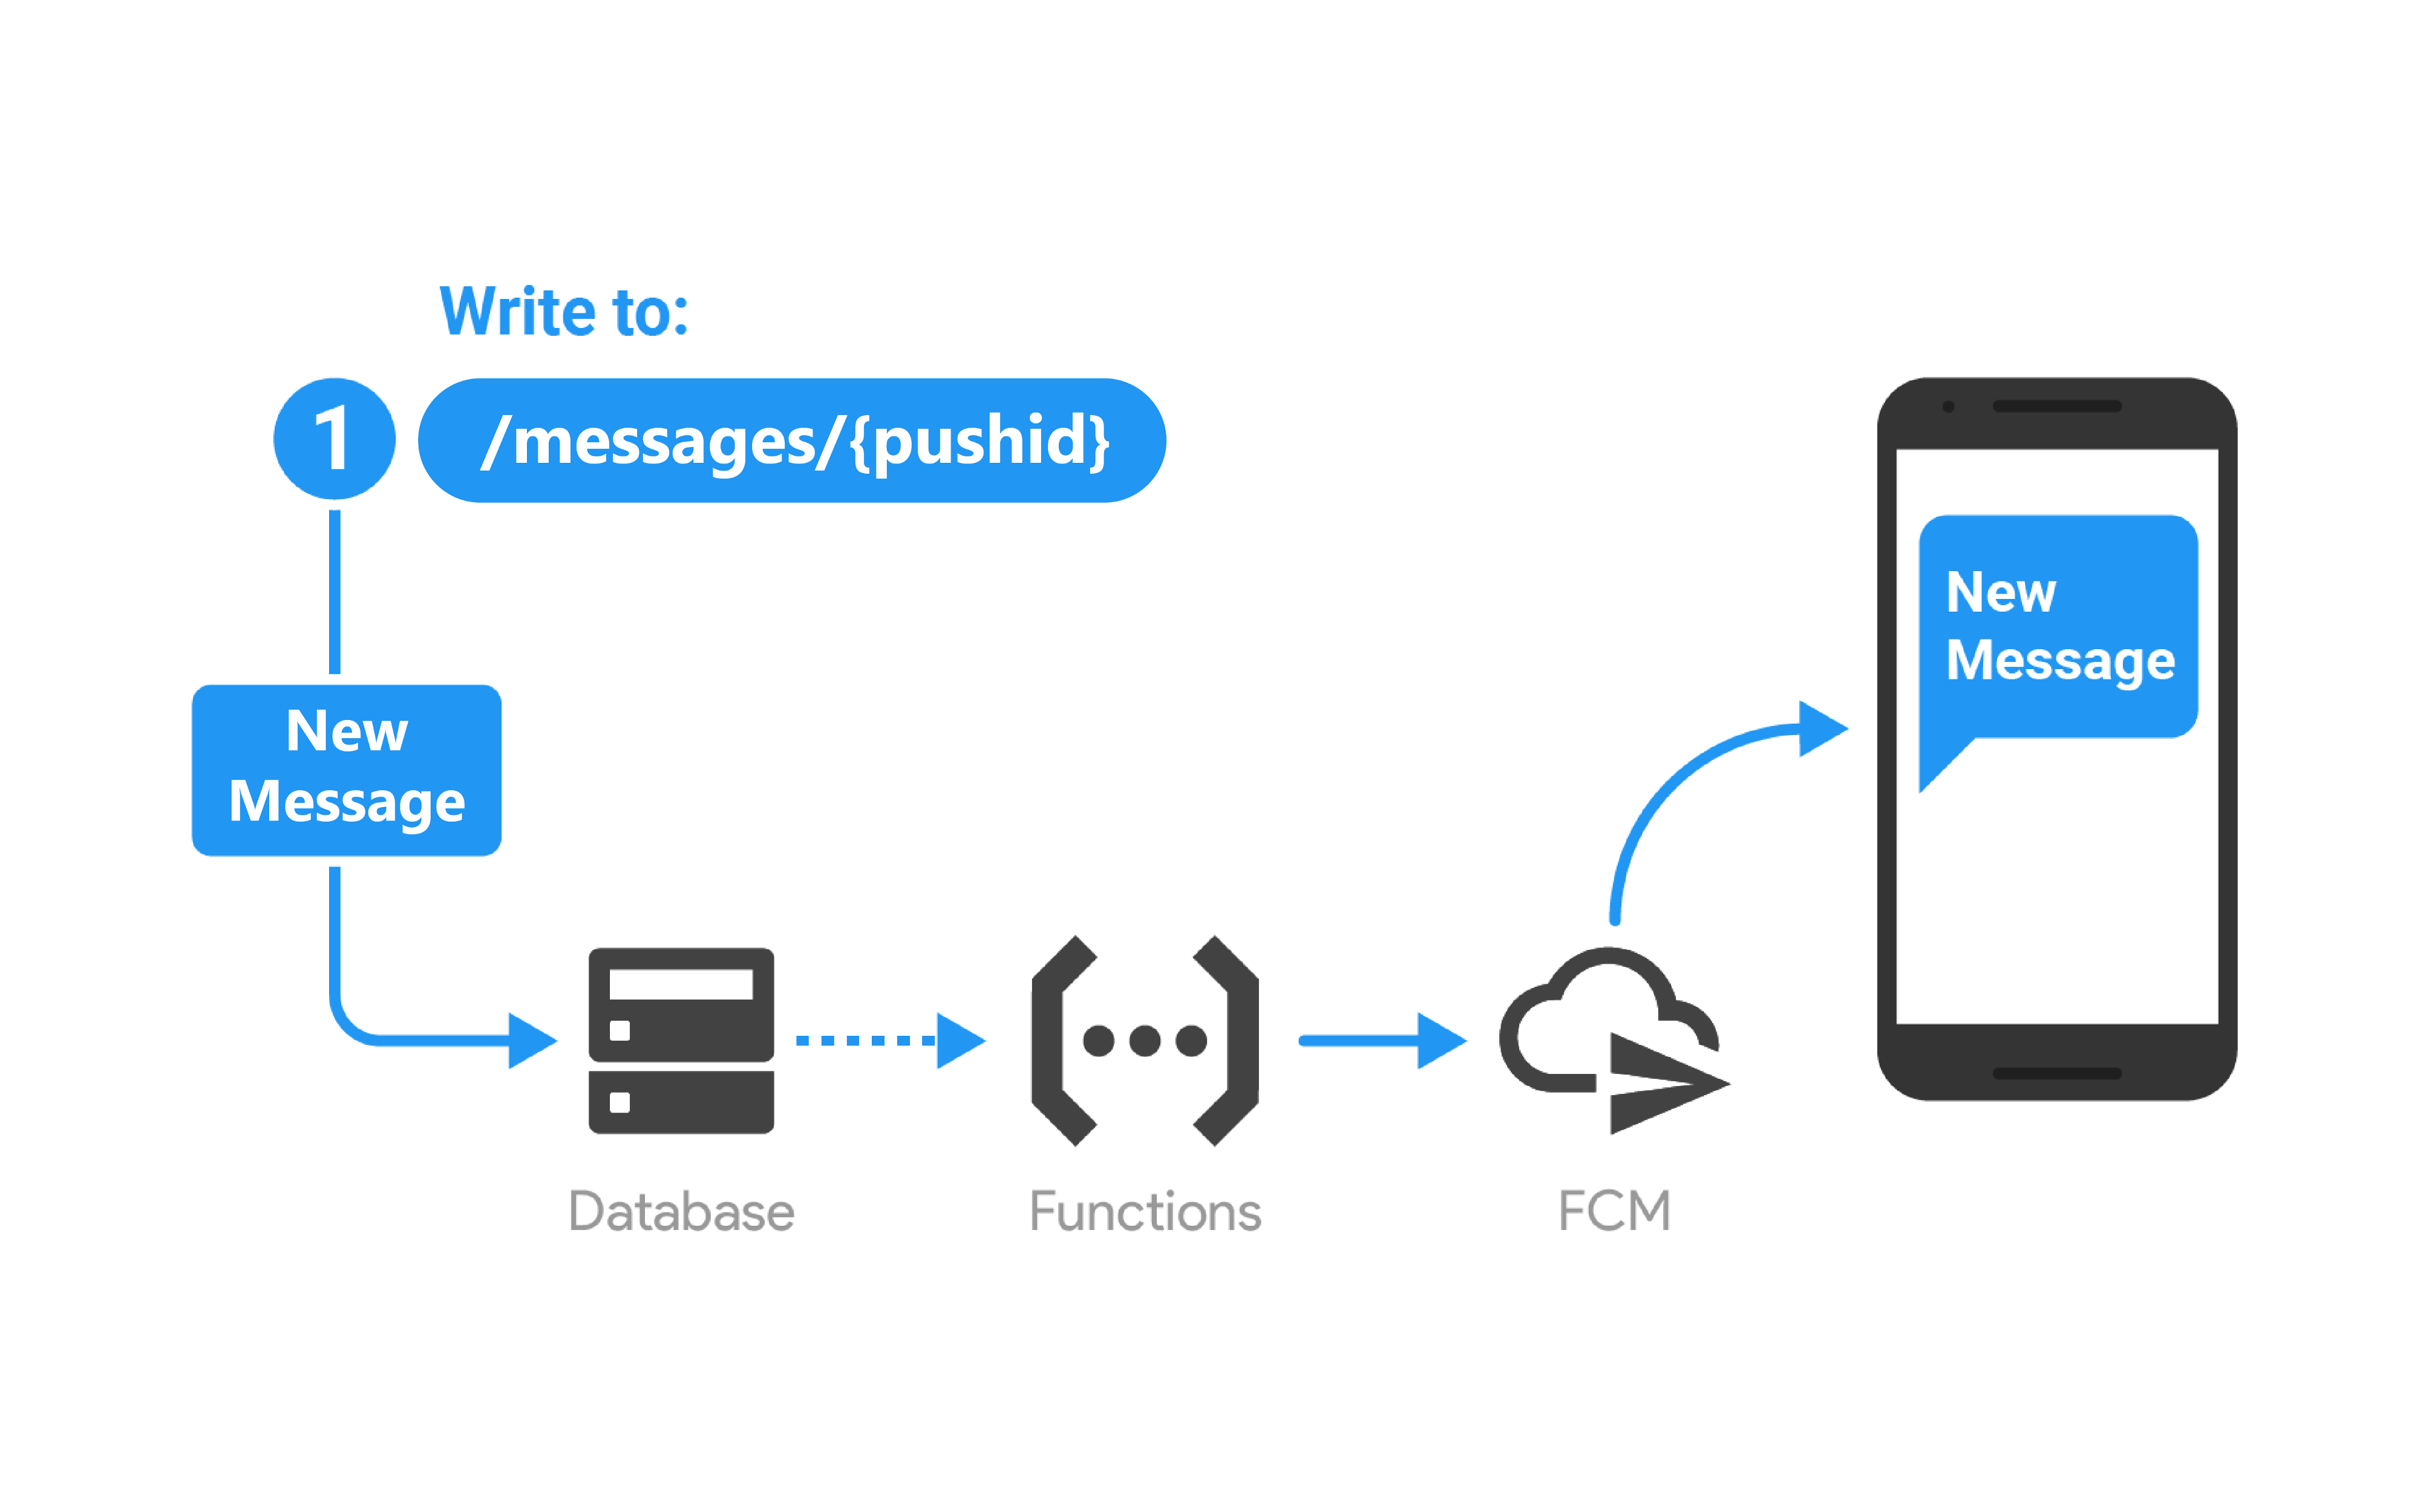 Device to Device Push Notification using Cloud Functions for